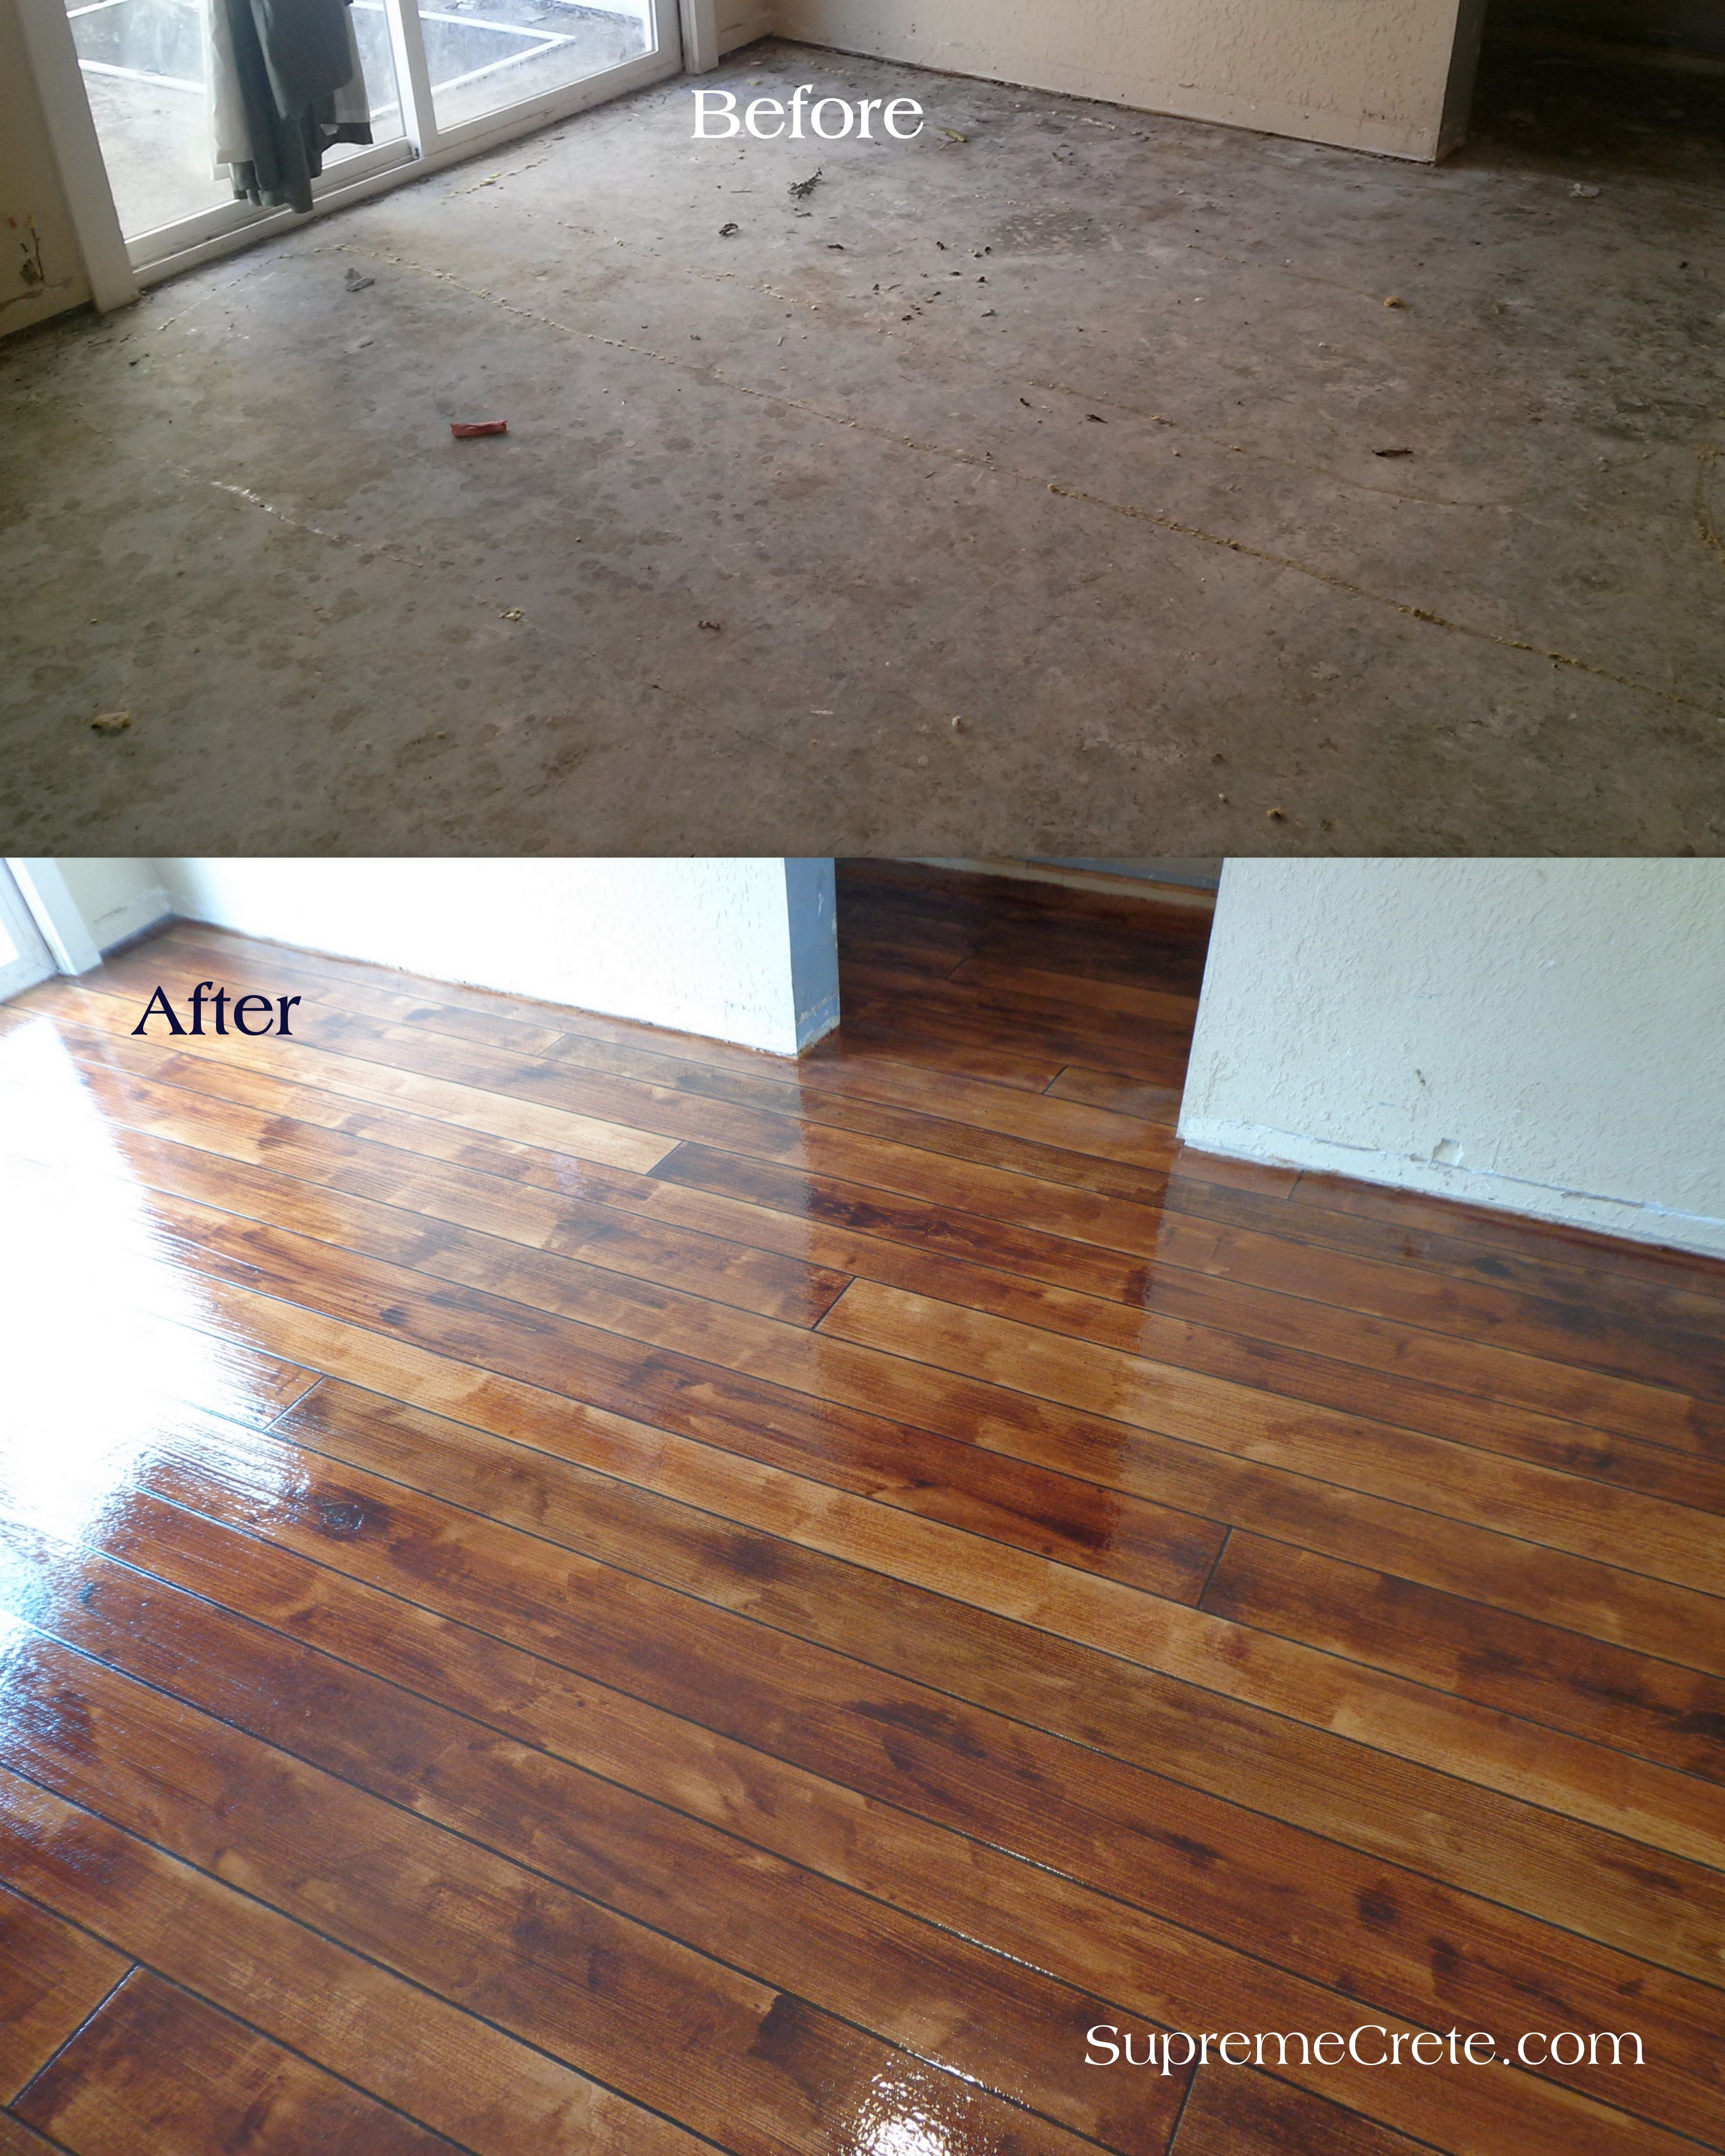 Whoa Concrete Floor Stain To Look Like Wood Diy Concrete Stain